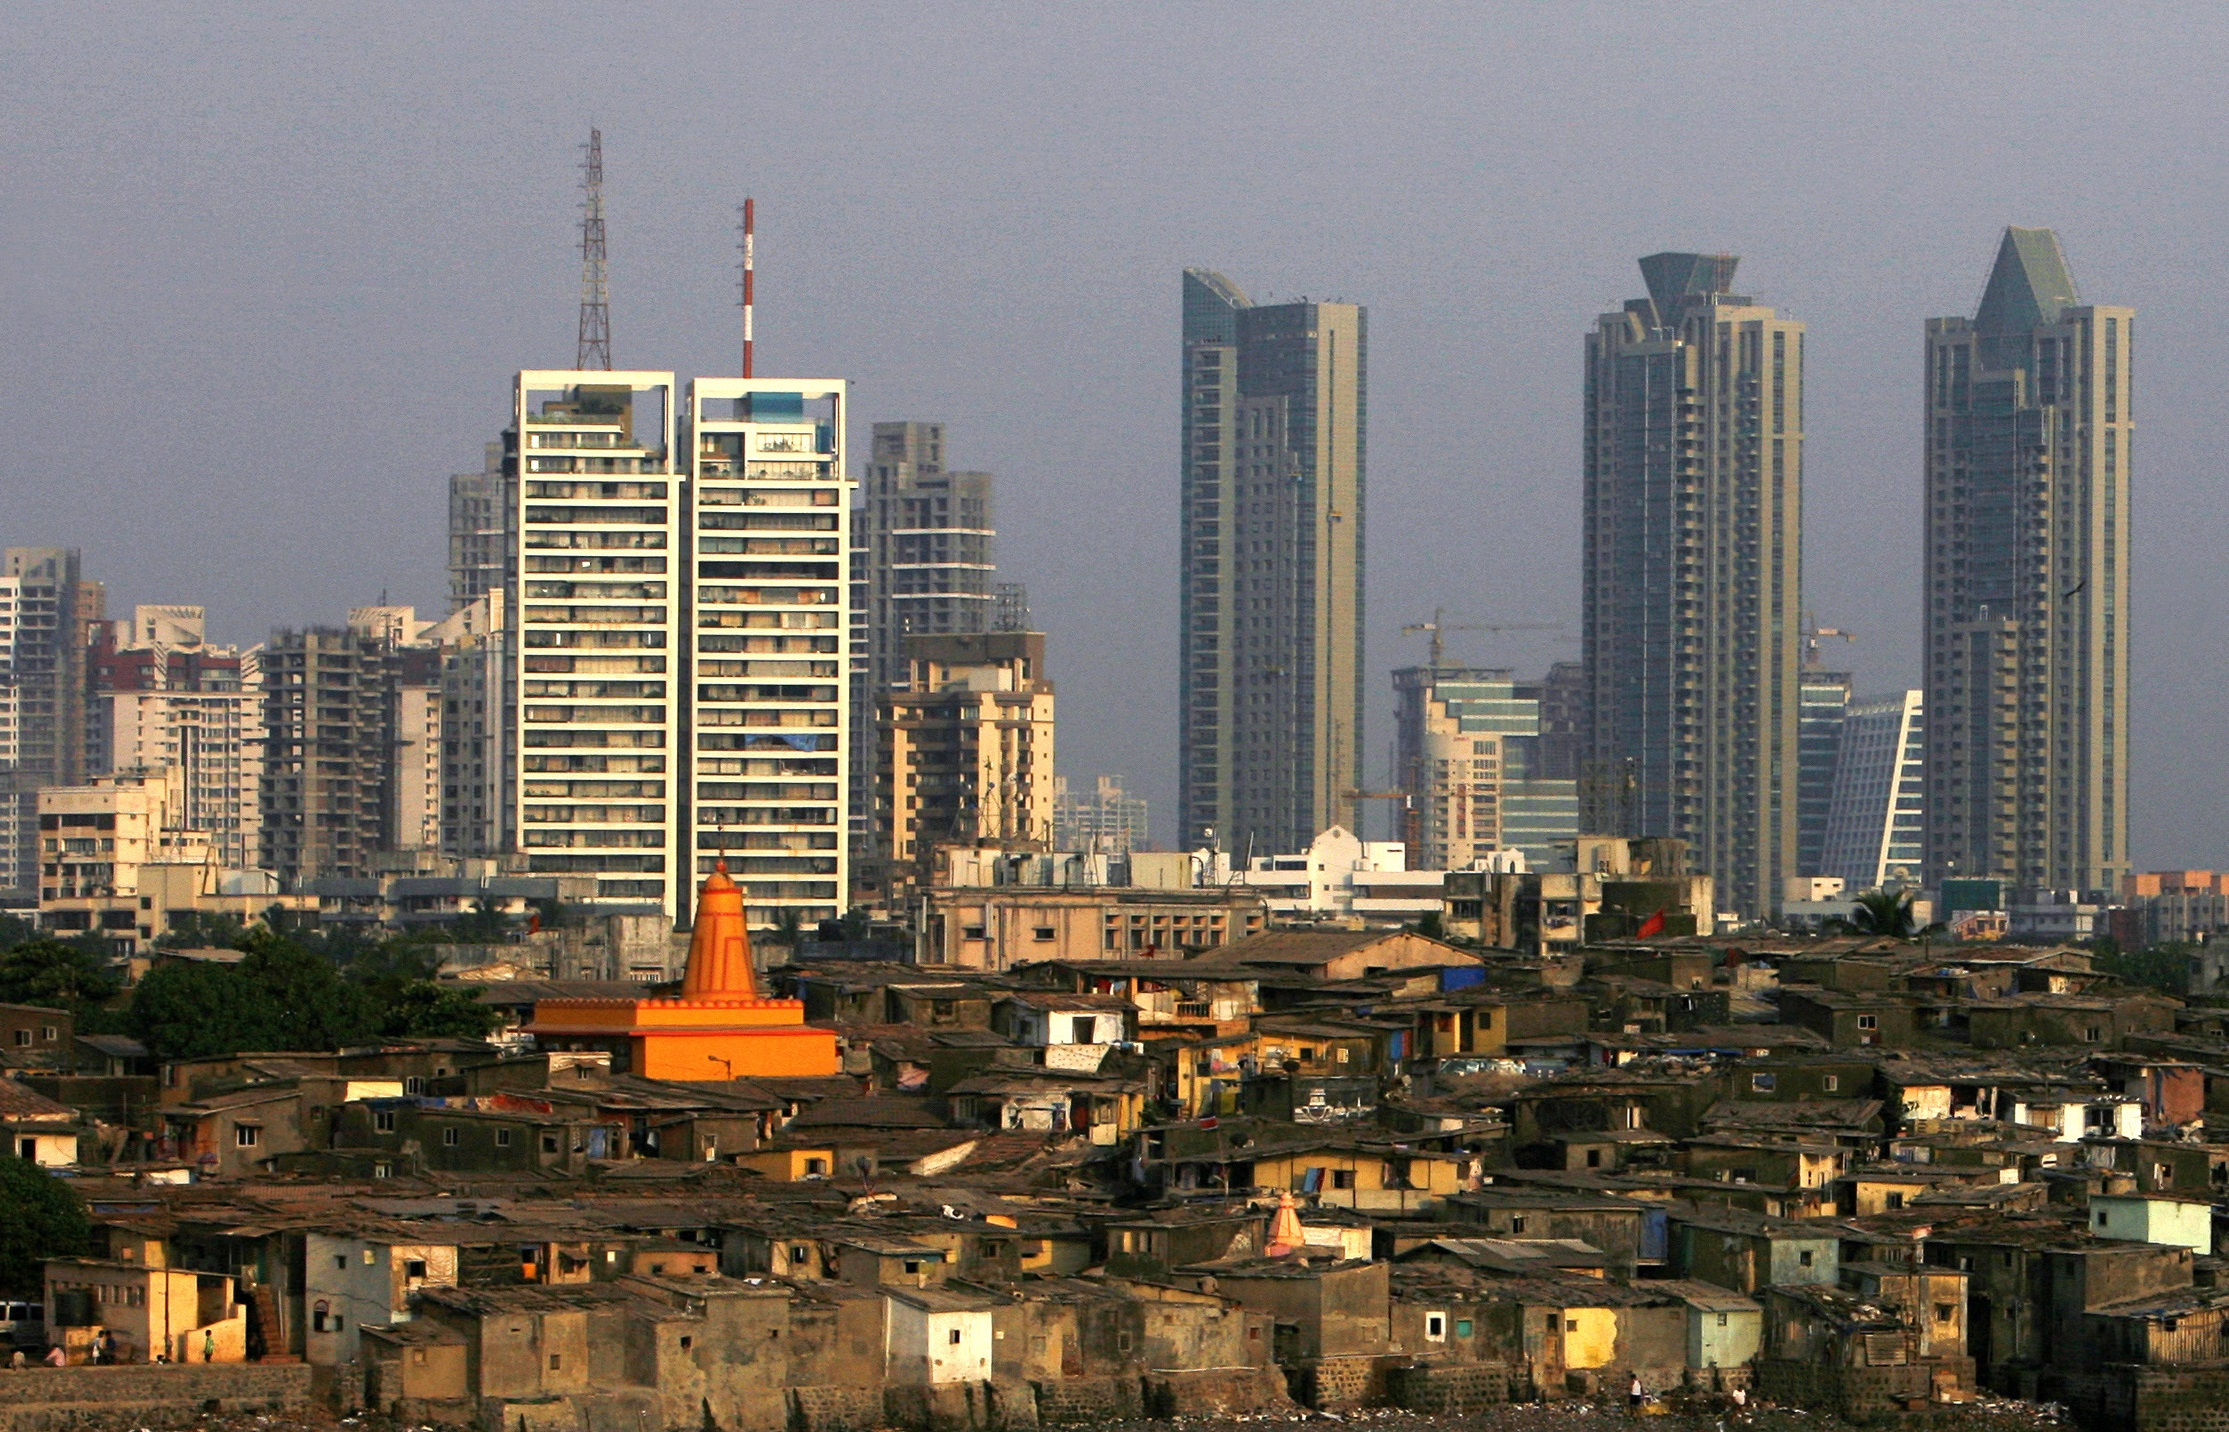 High rise buildings are seen behind a slum in Mumbai April 28, 2009. REUTERS/Arko Datta (INDIA SOCIETY BUSINESS) - RTXEIGM